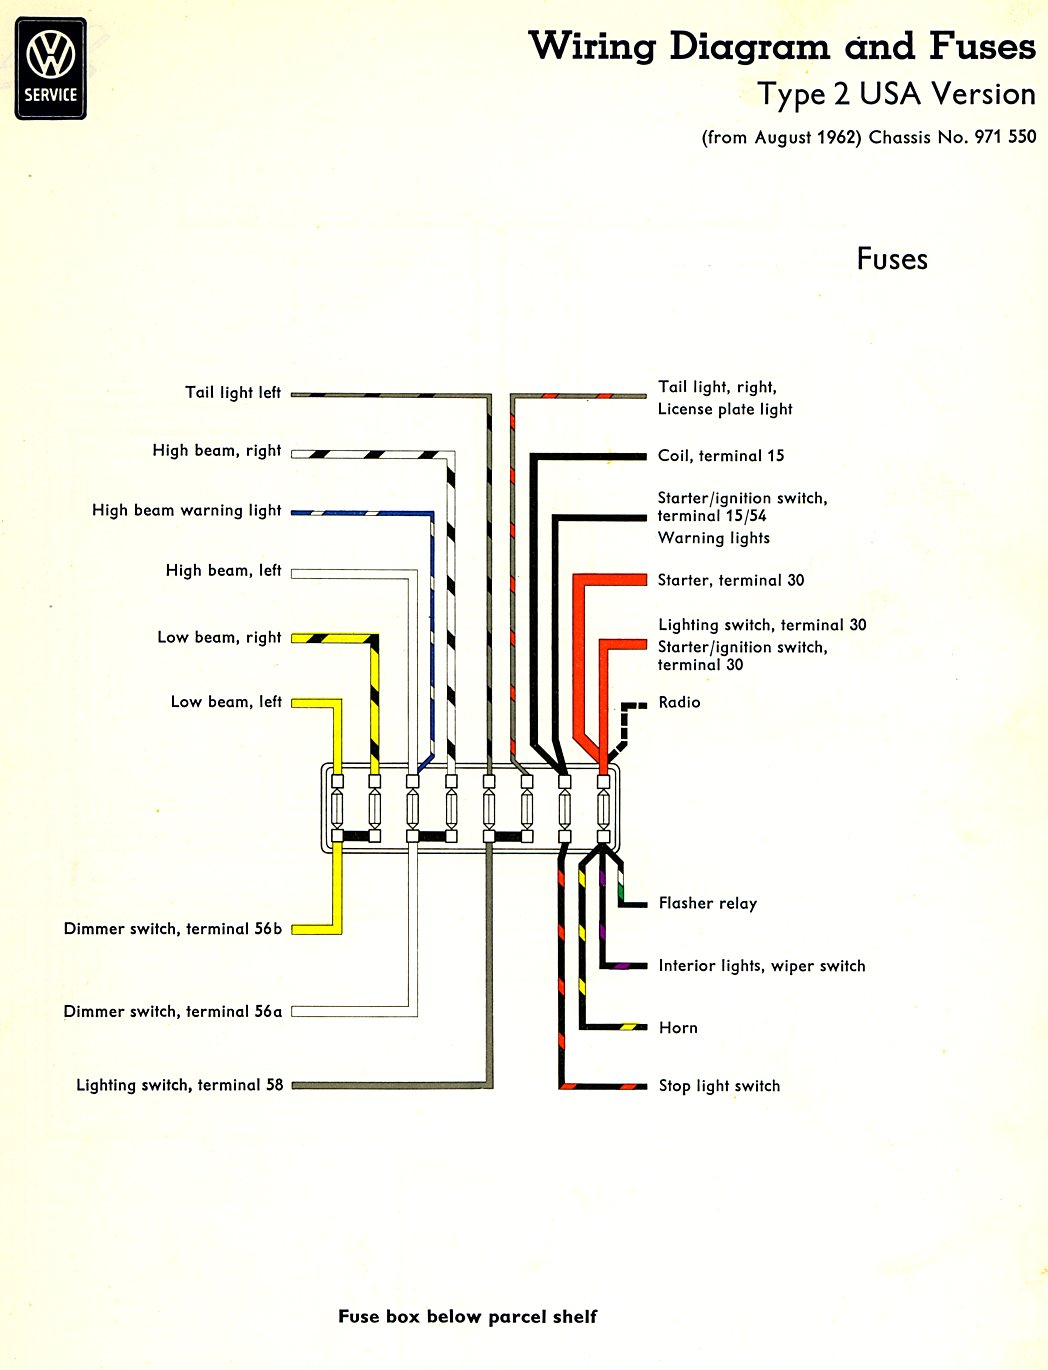 Type 2 Wiring Diagrams Fuse Holder Diagram